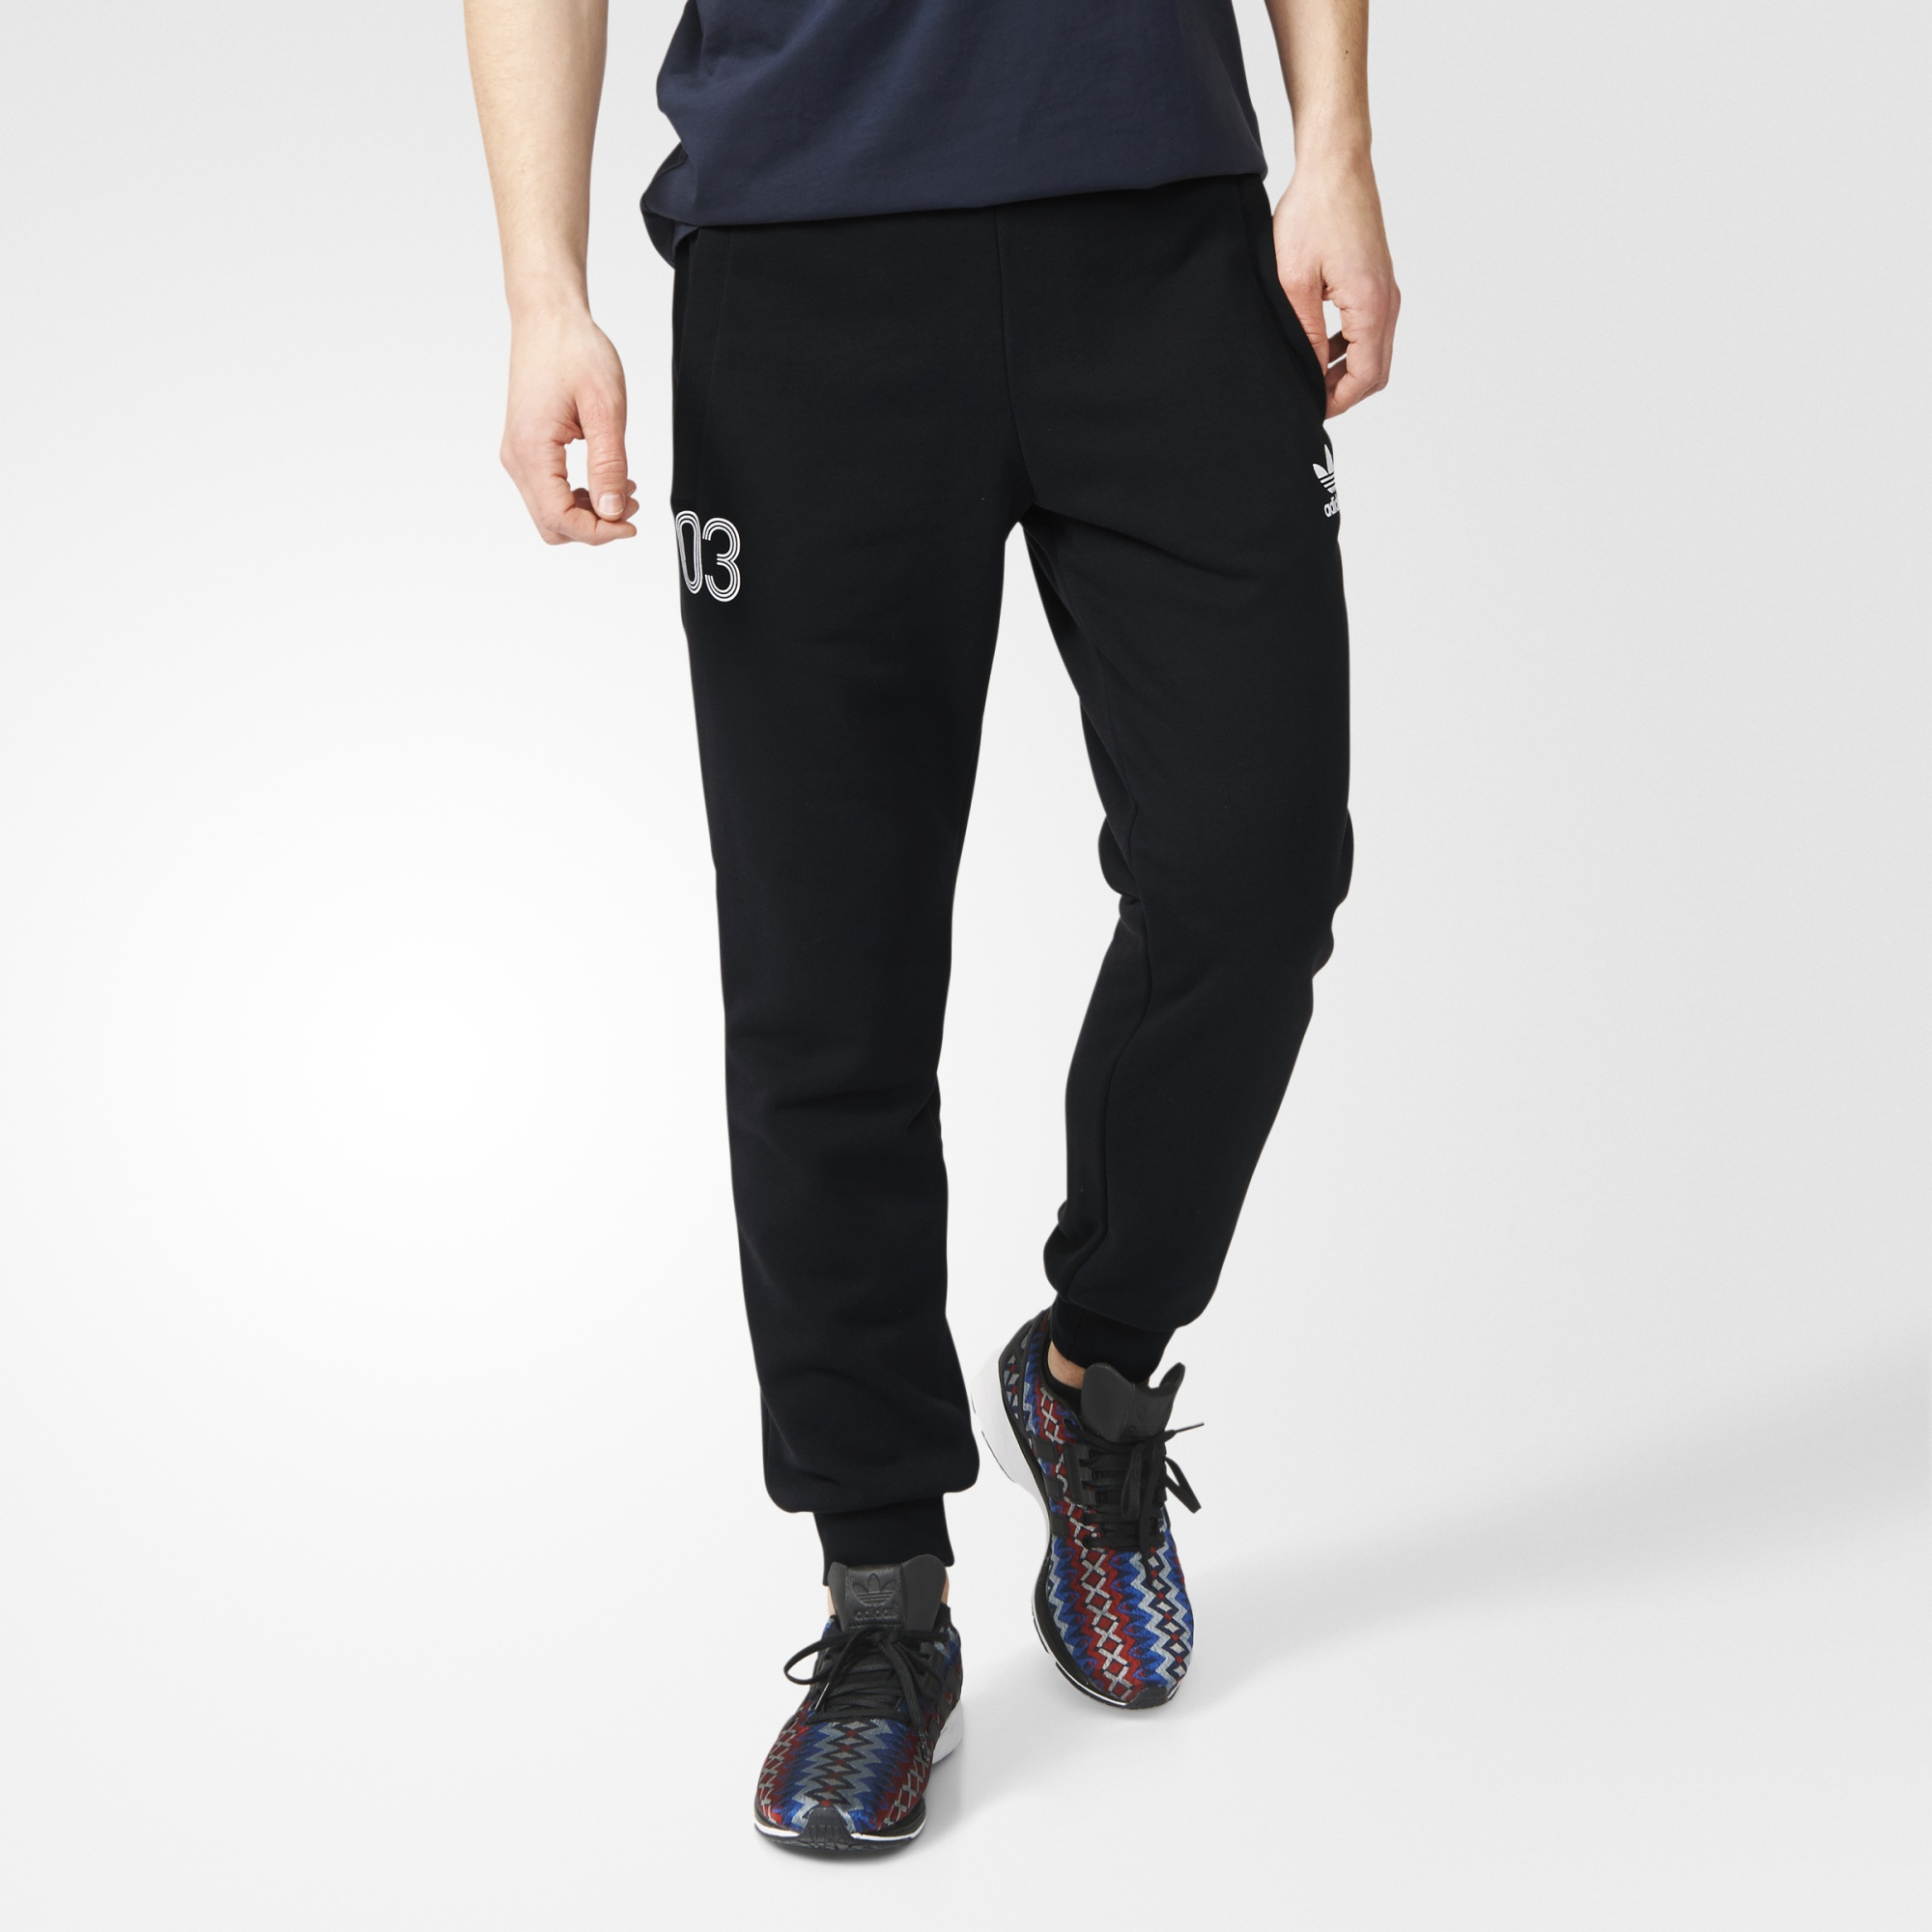 45bbe2a9c19 Men s Adidas Originals Bottoms - Team Classic Track Pants - Black ...